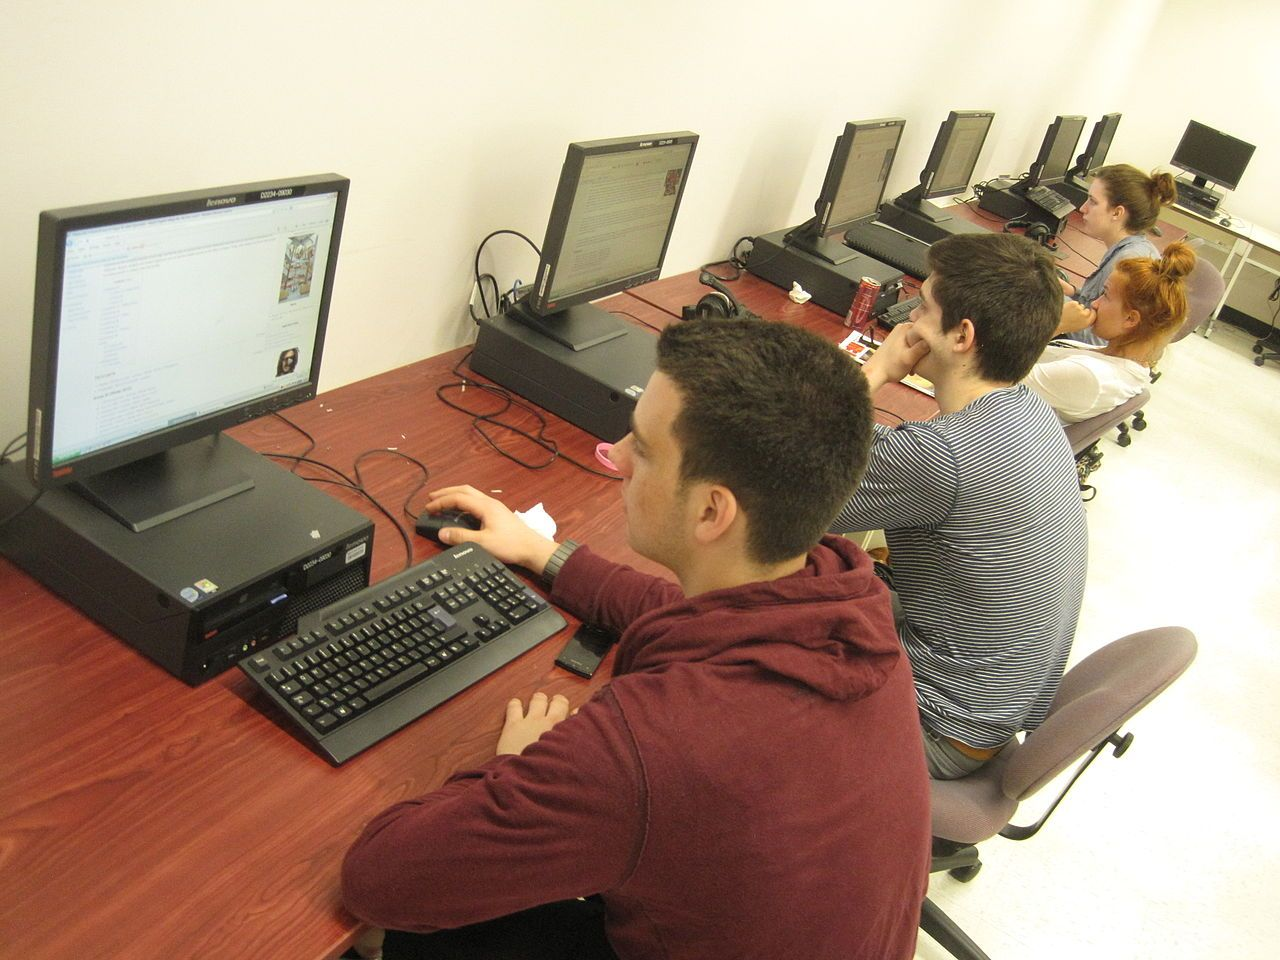 Work in the computer lab - Student - Wikipedia, the free encyclopedia